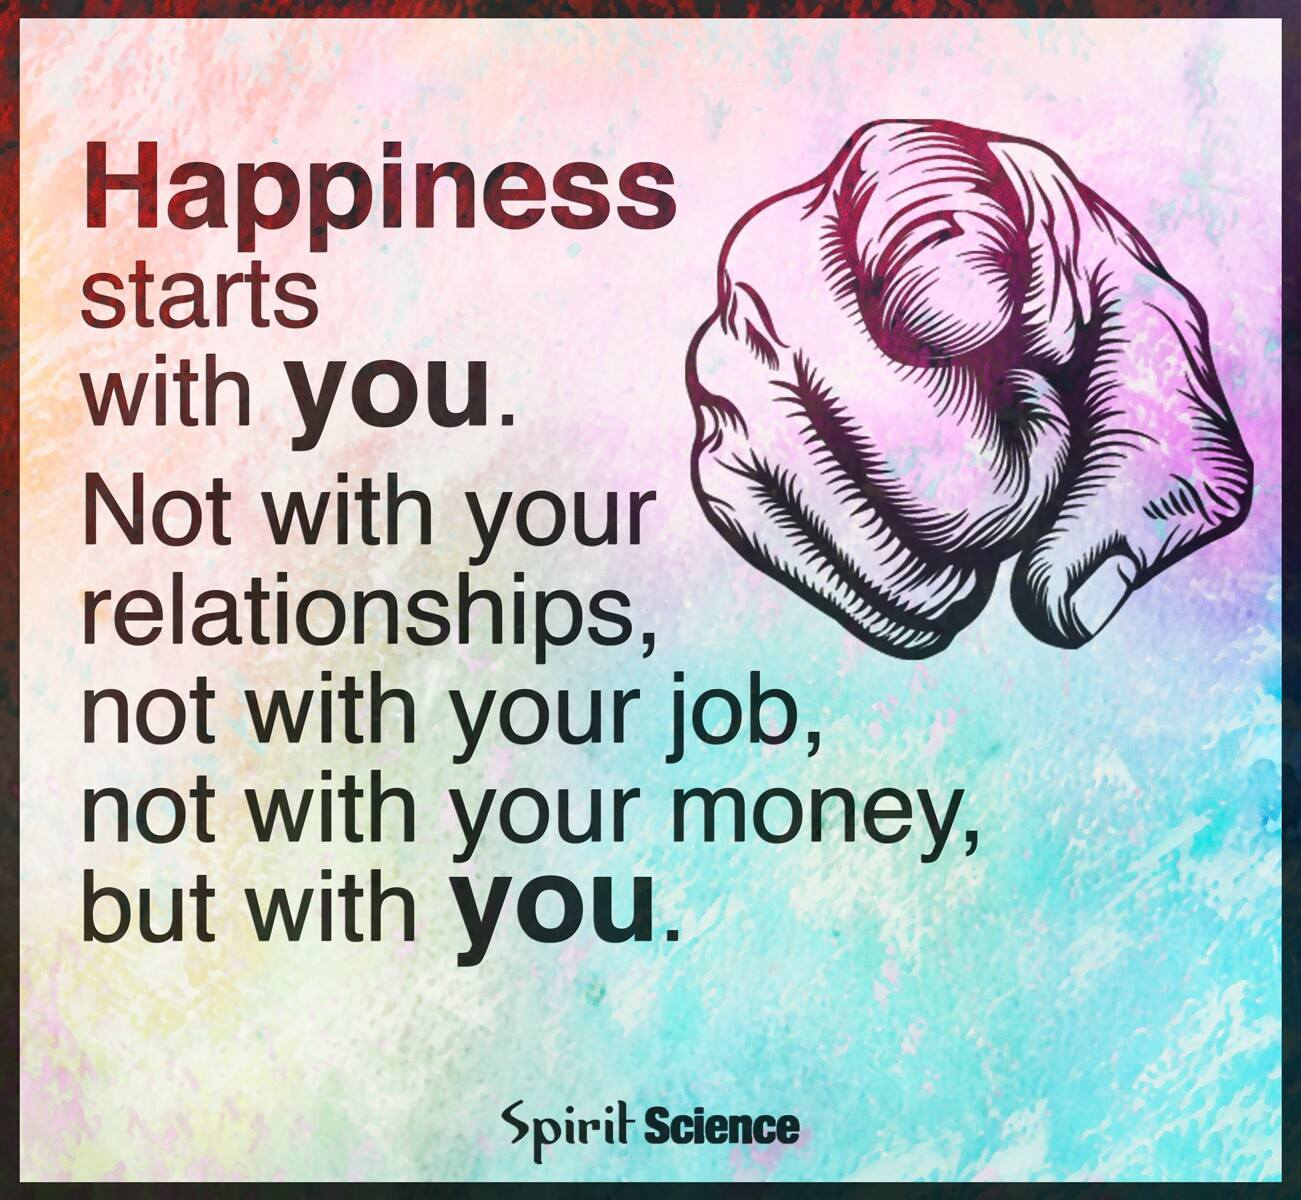 happiness starts with you, not with your relationships, not with you job, not with your money, but with you